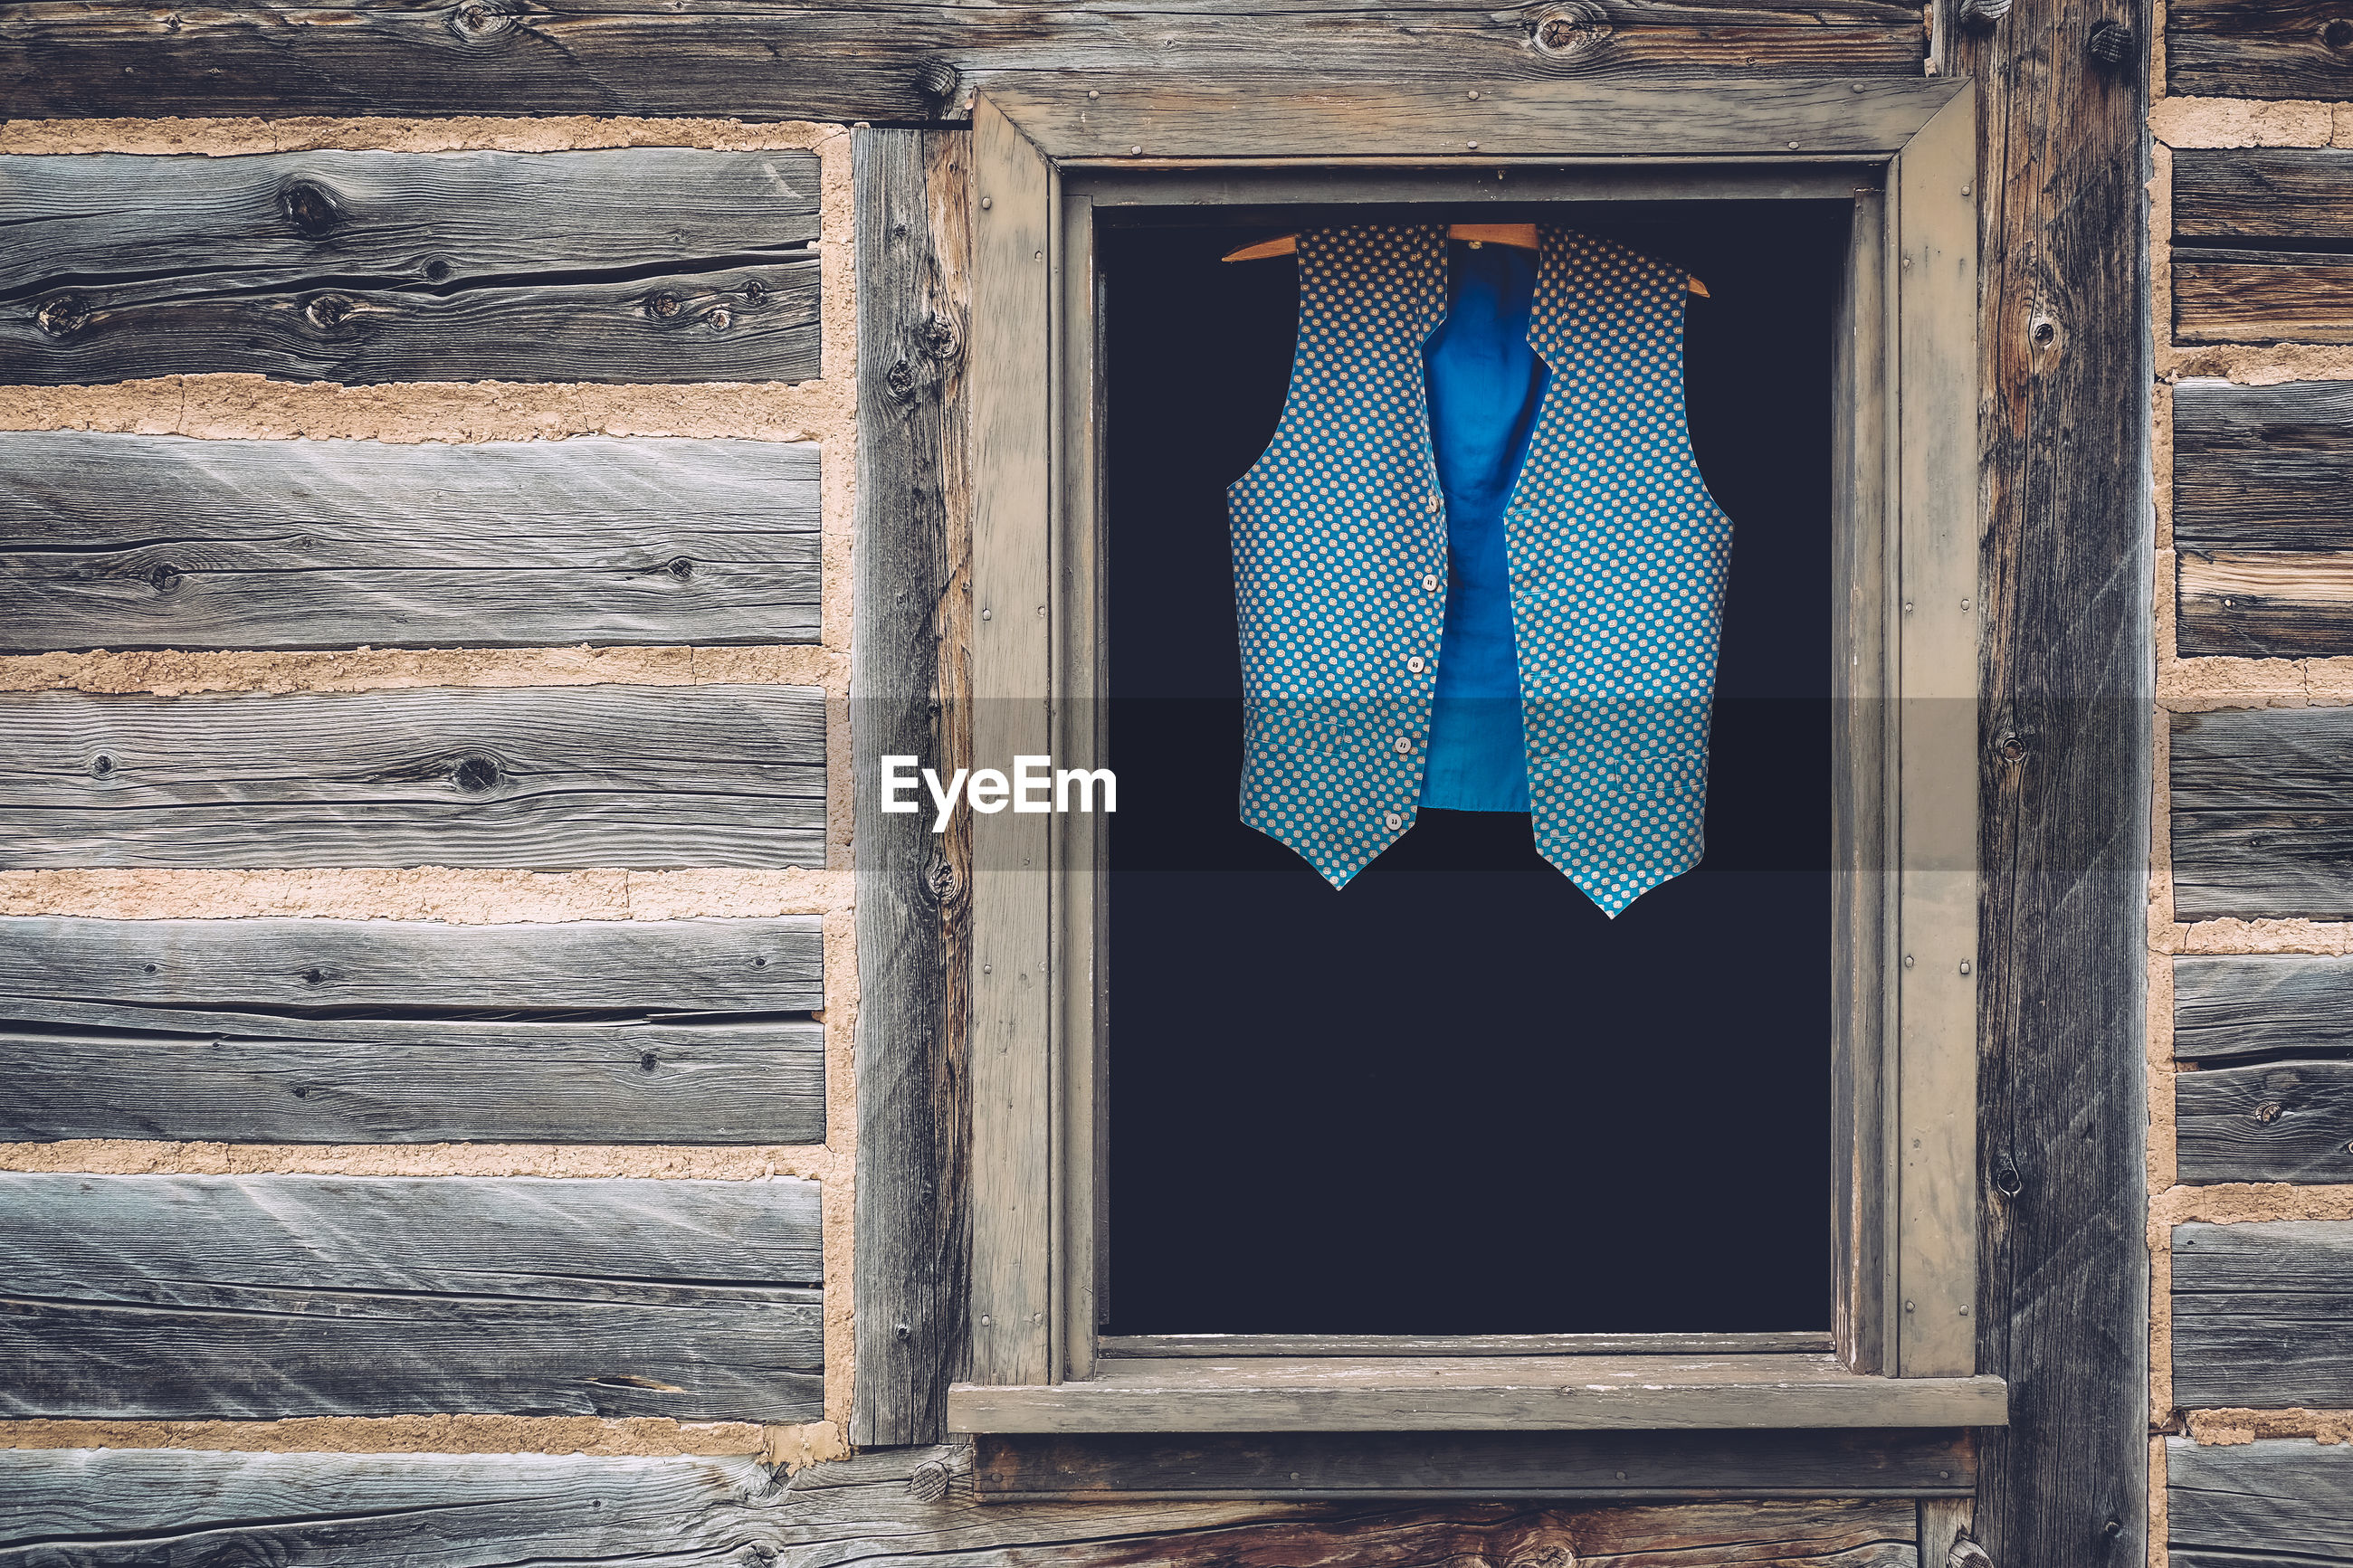 Blue waistcoat hanging on coathanger at window in log cabin